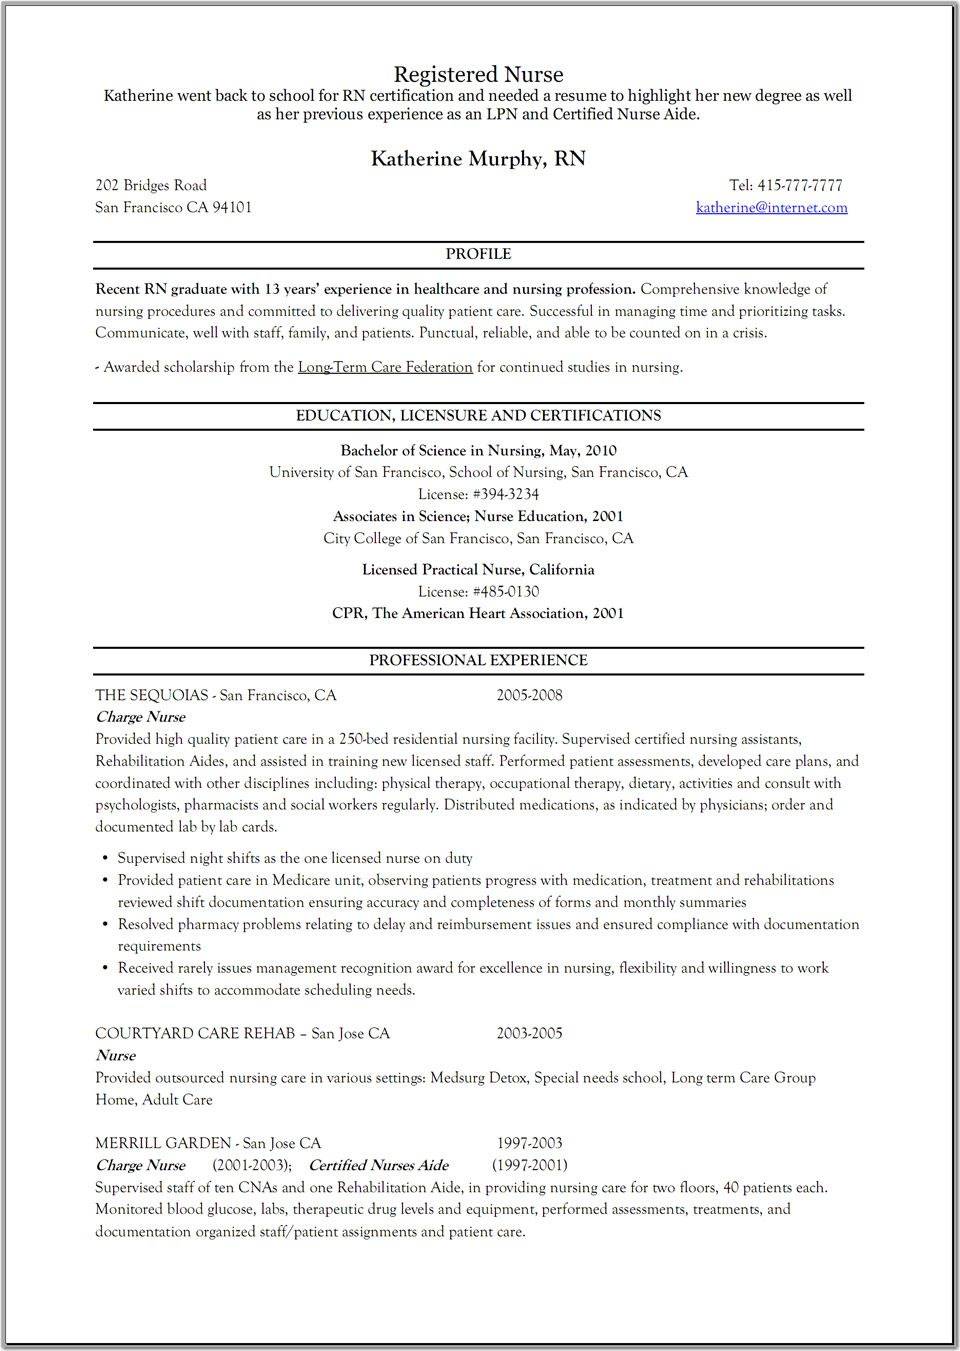 Registered Nurse Resume Rehab | resume | Pinterest | Registered ...